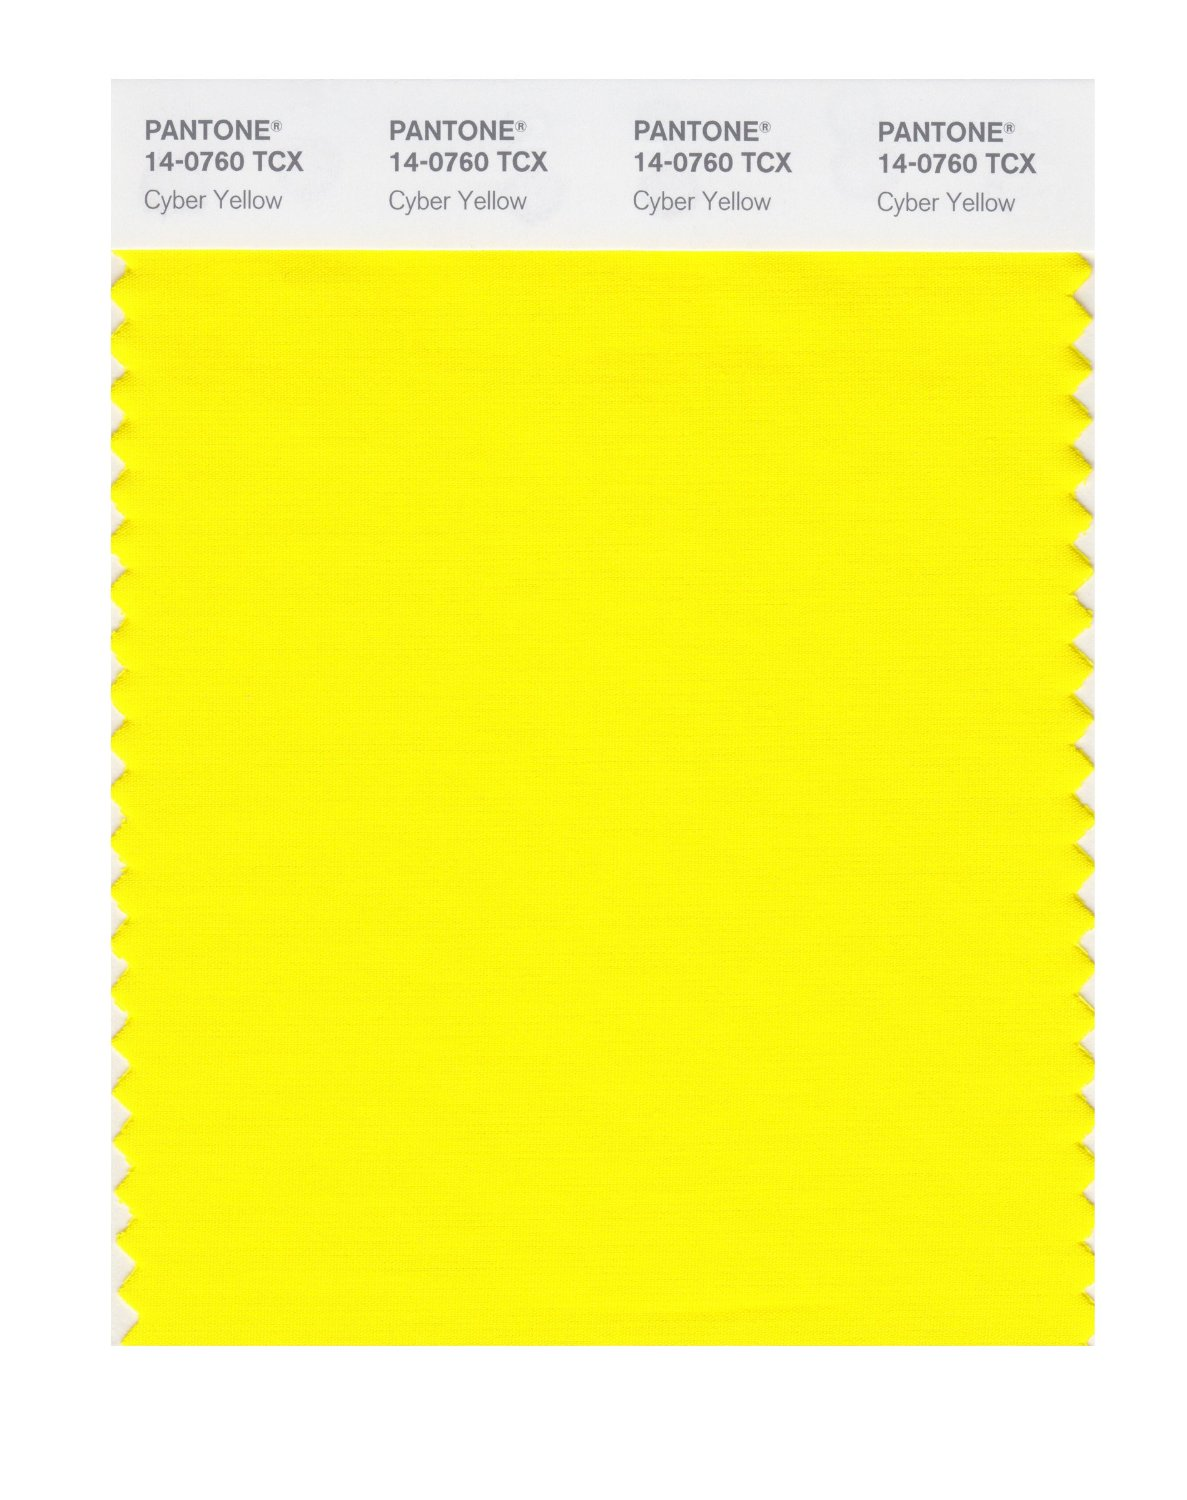 Pantone Smart Swatch 14-0760 Cyber Yellow